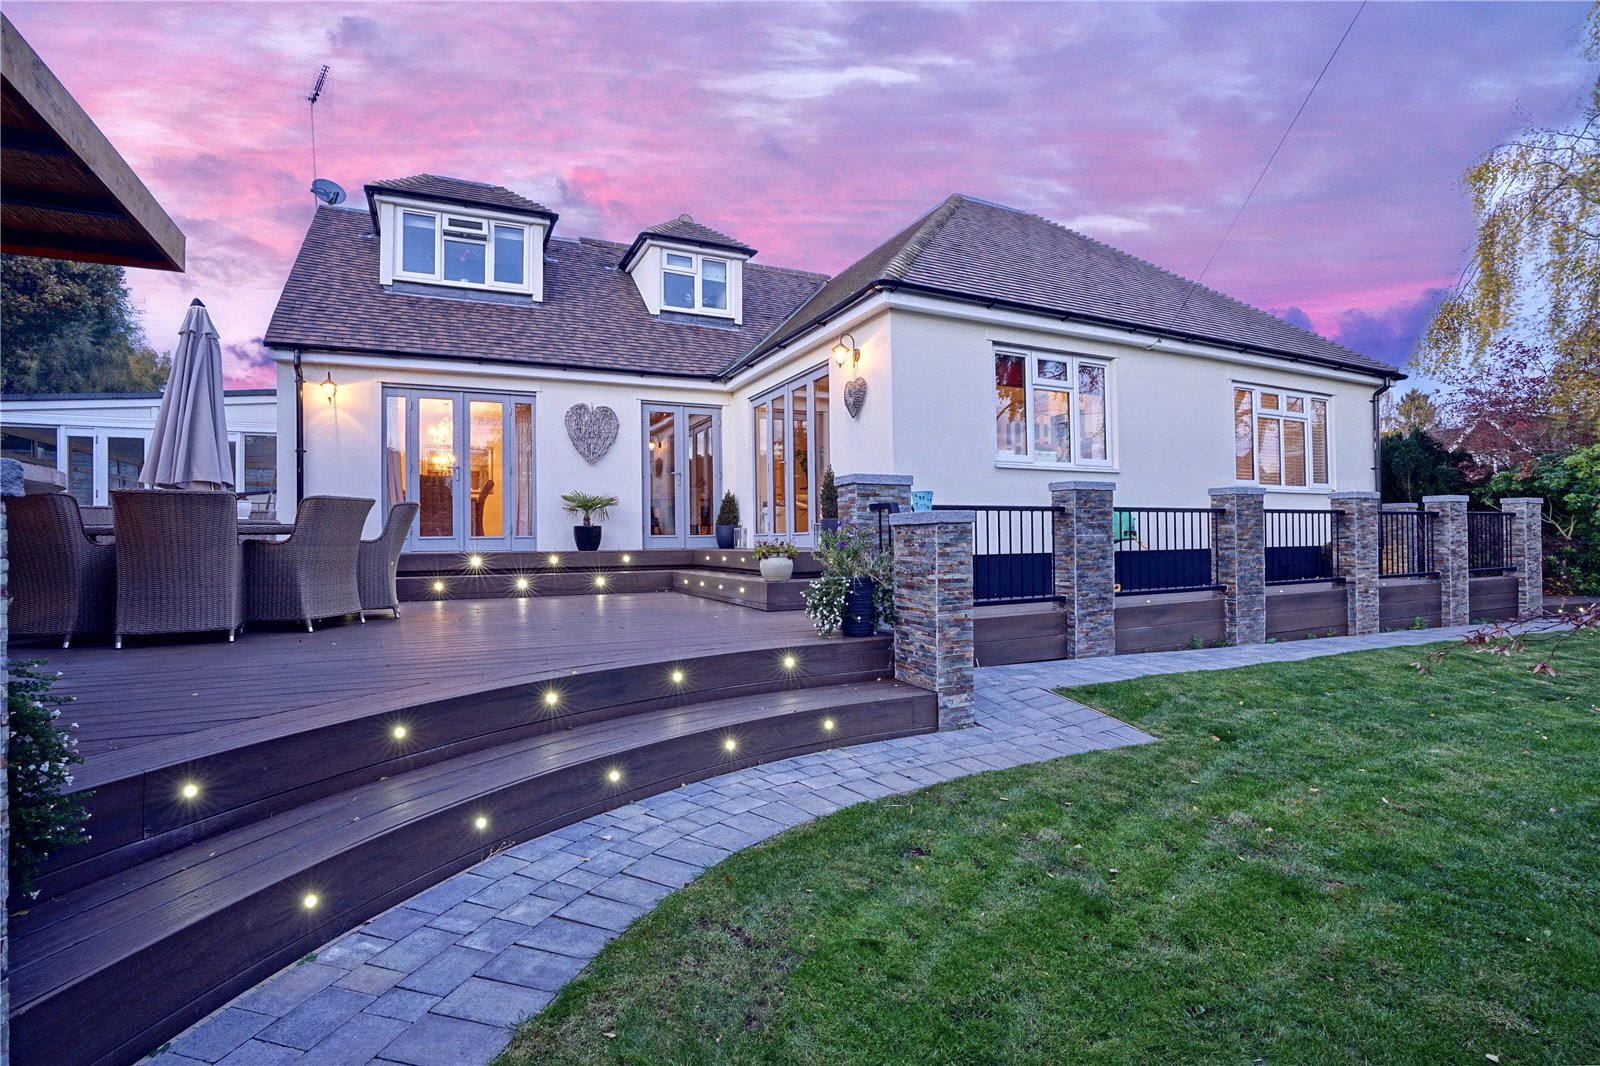 4 bed house for sale in Heathbrow Road, Old Welwyn 1